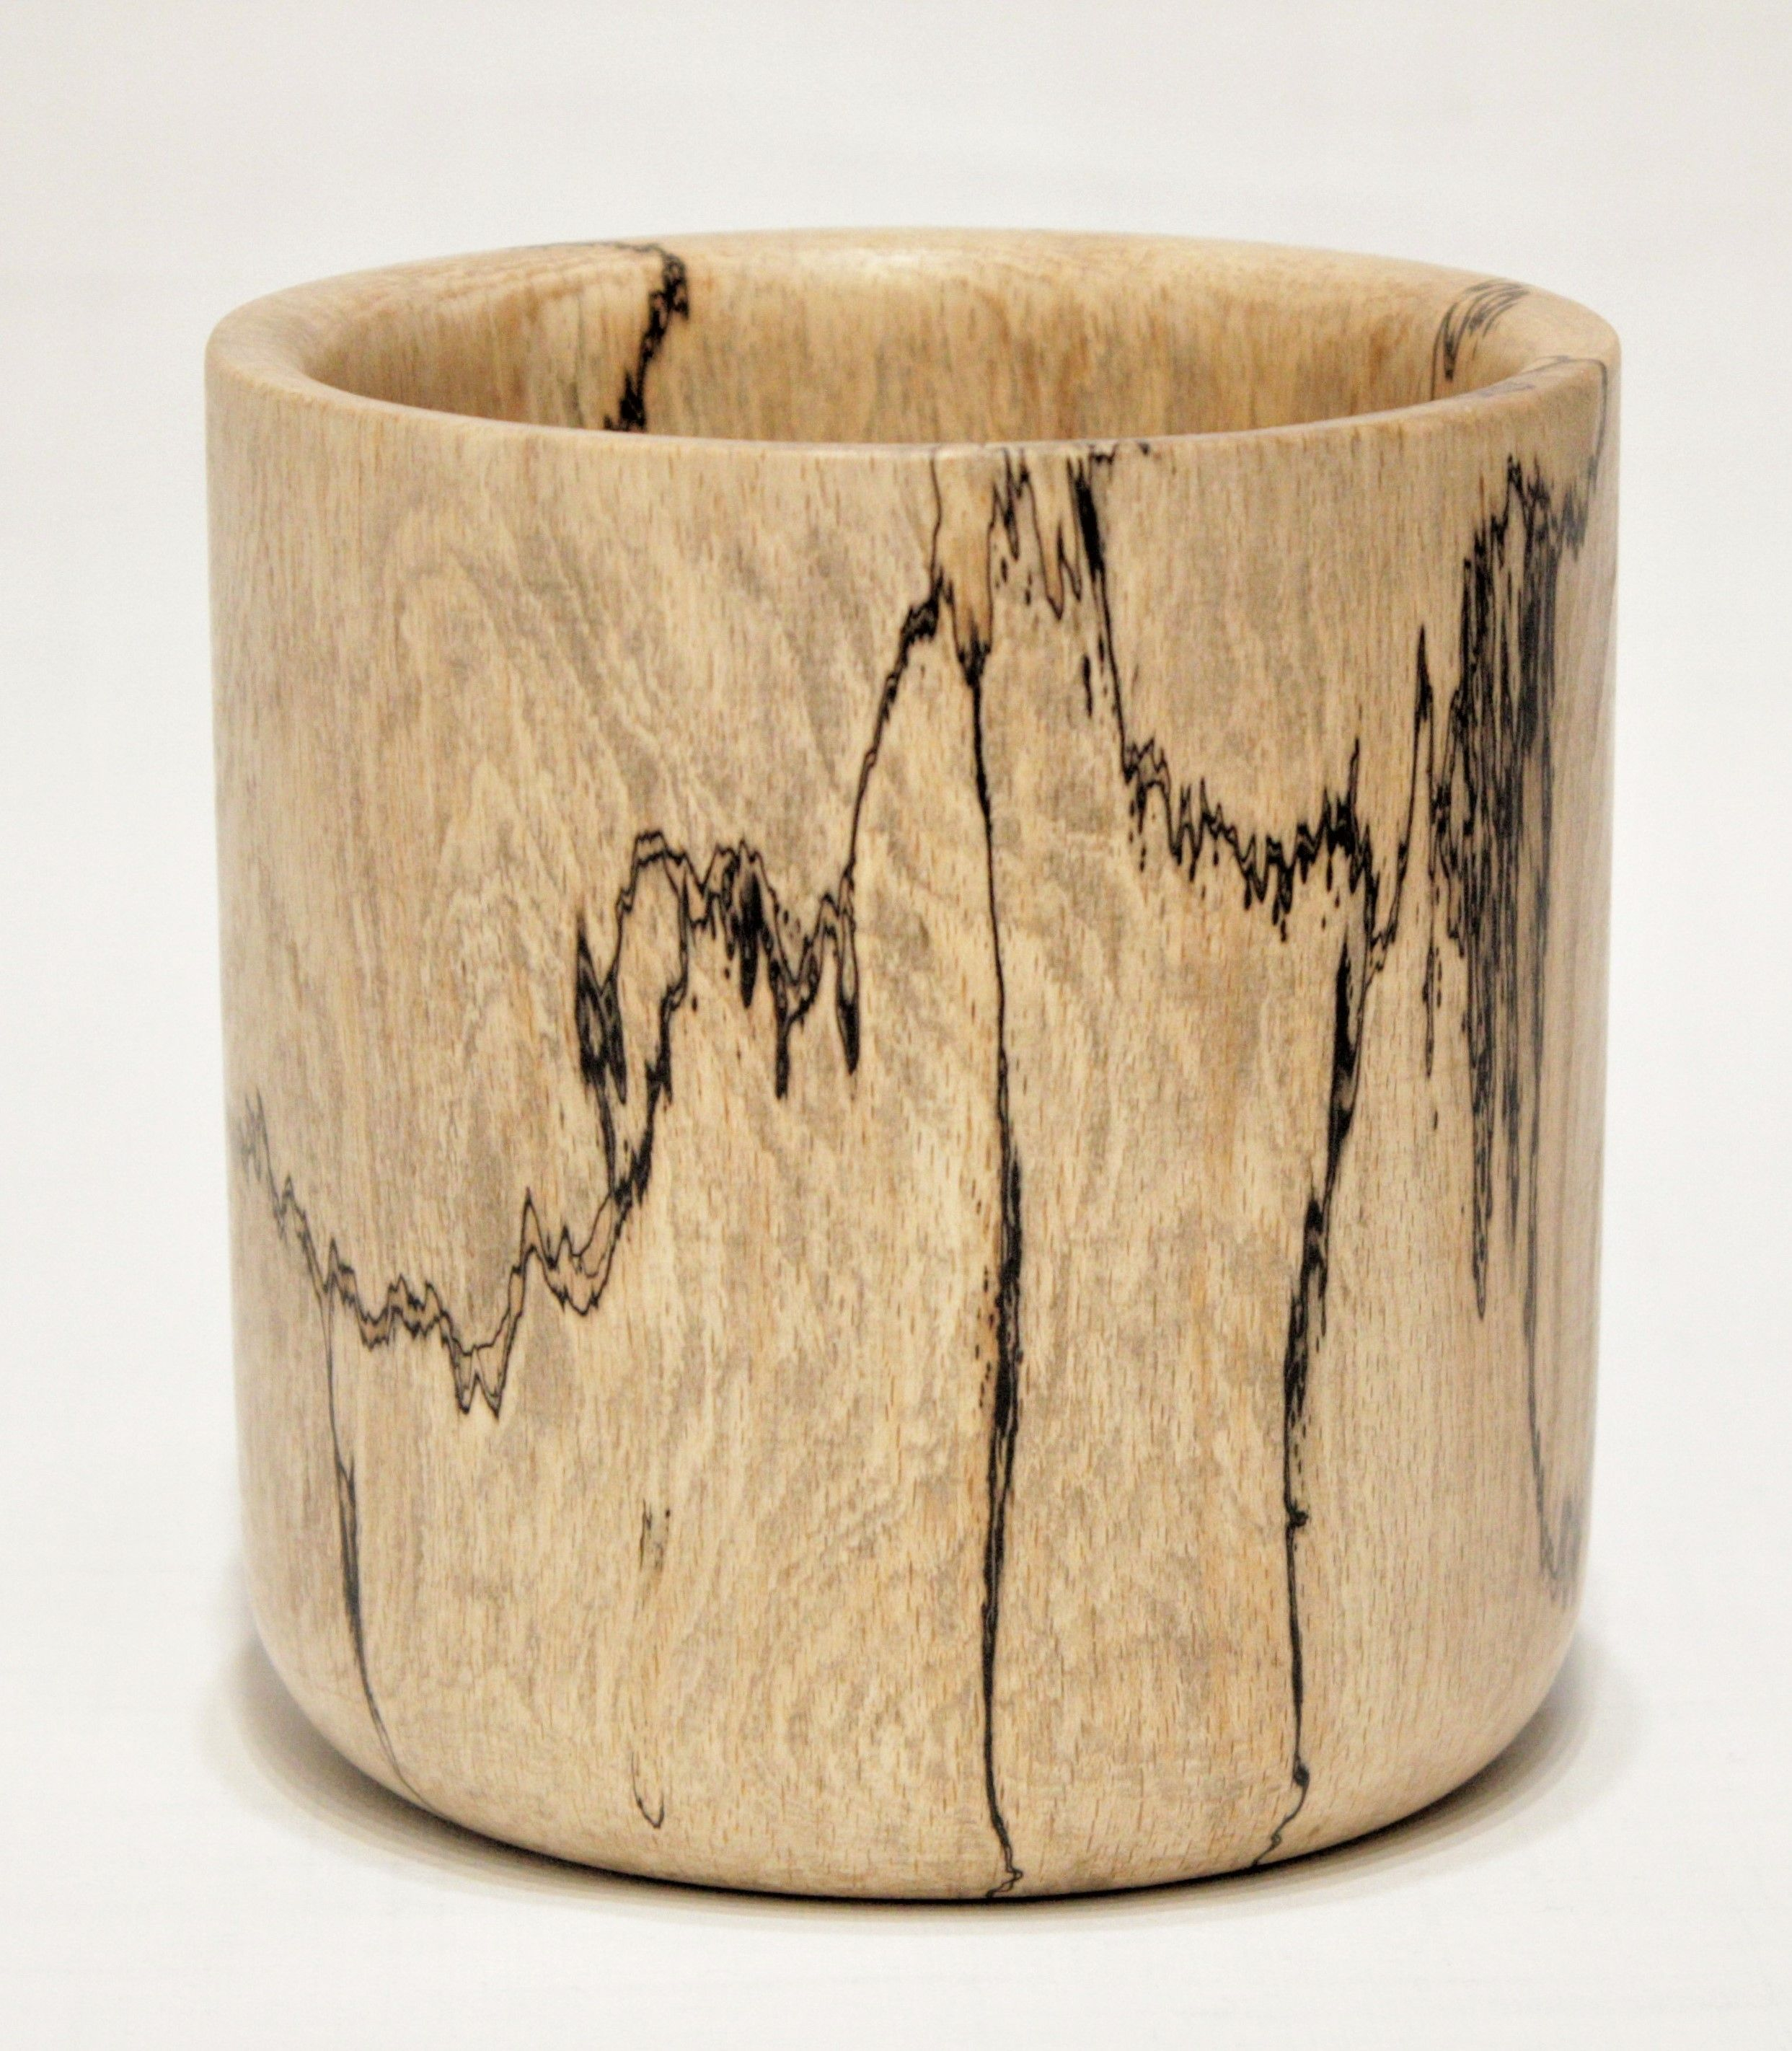 Spalted Beech Wood ~ Spalted beech woodturned pot buy artisan items made from